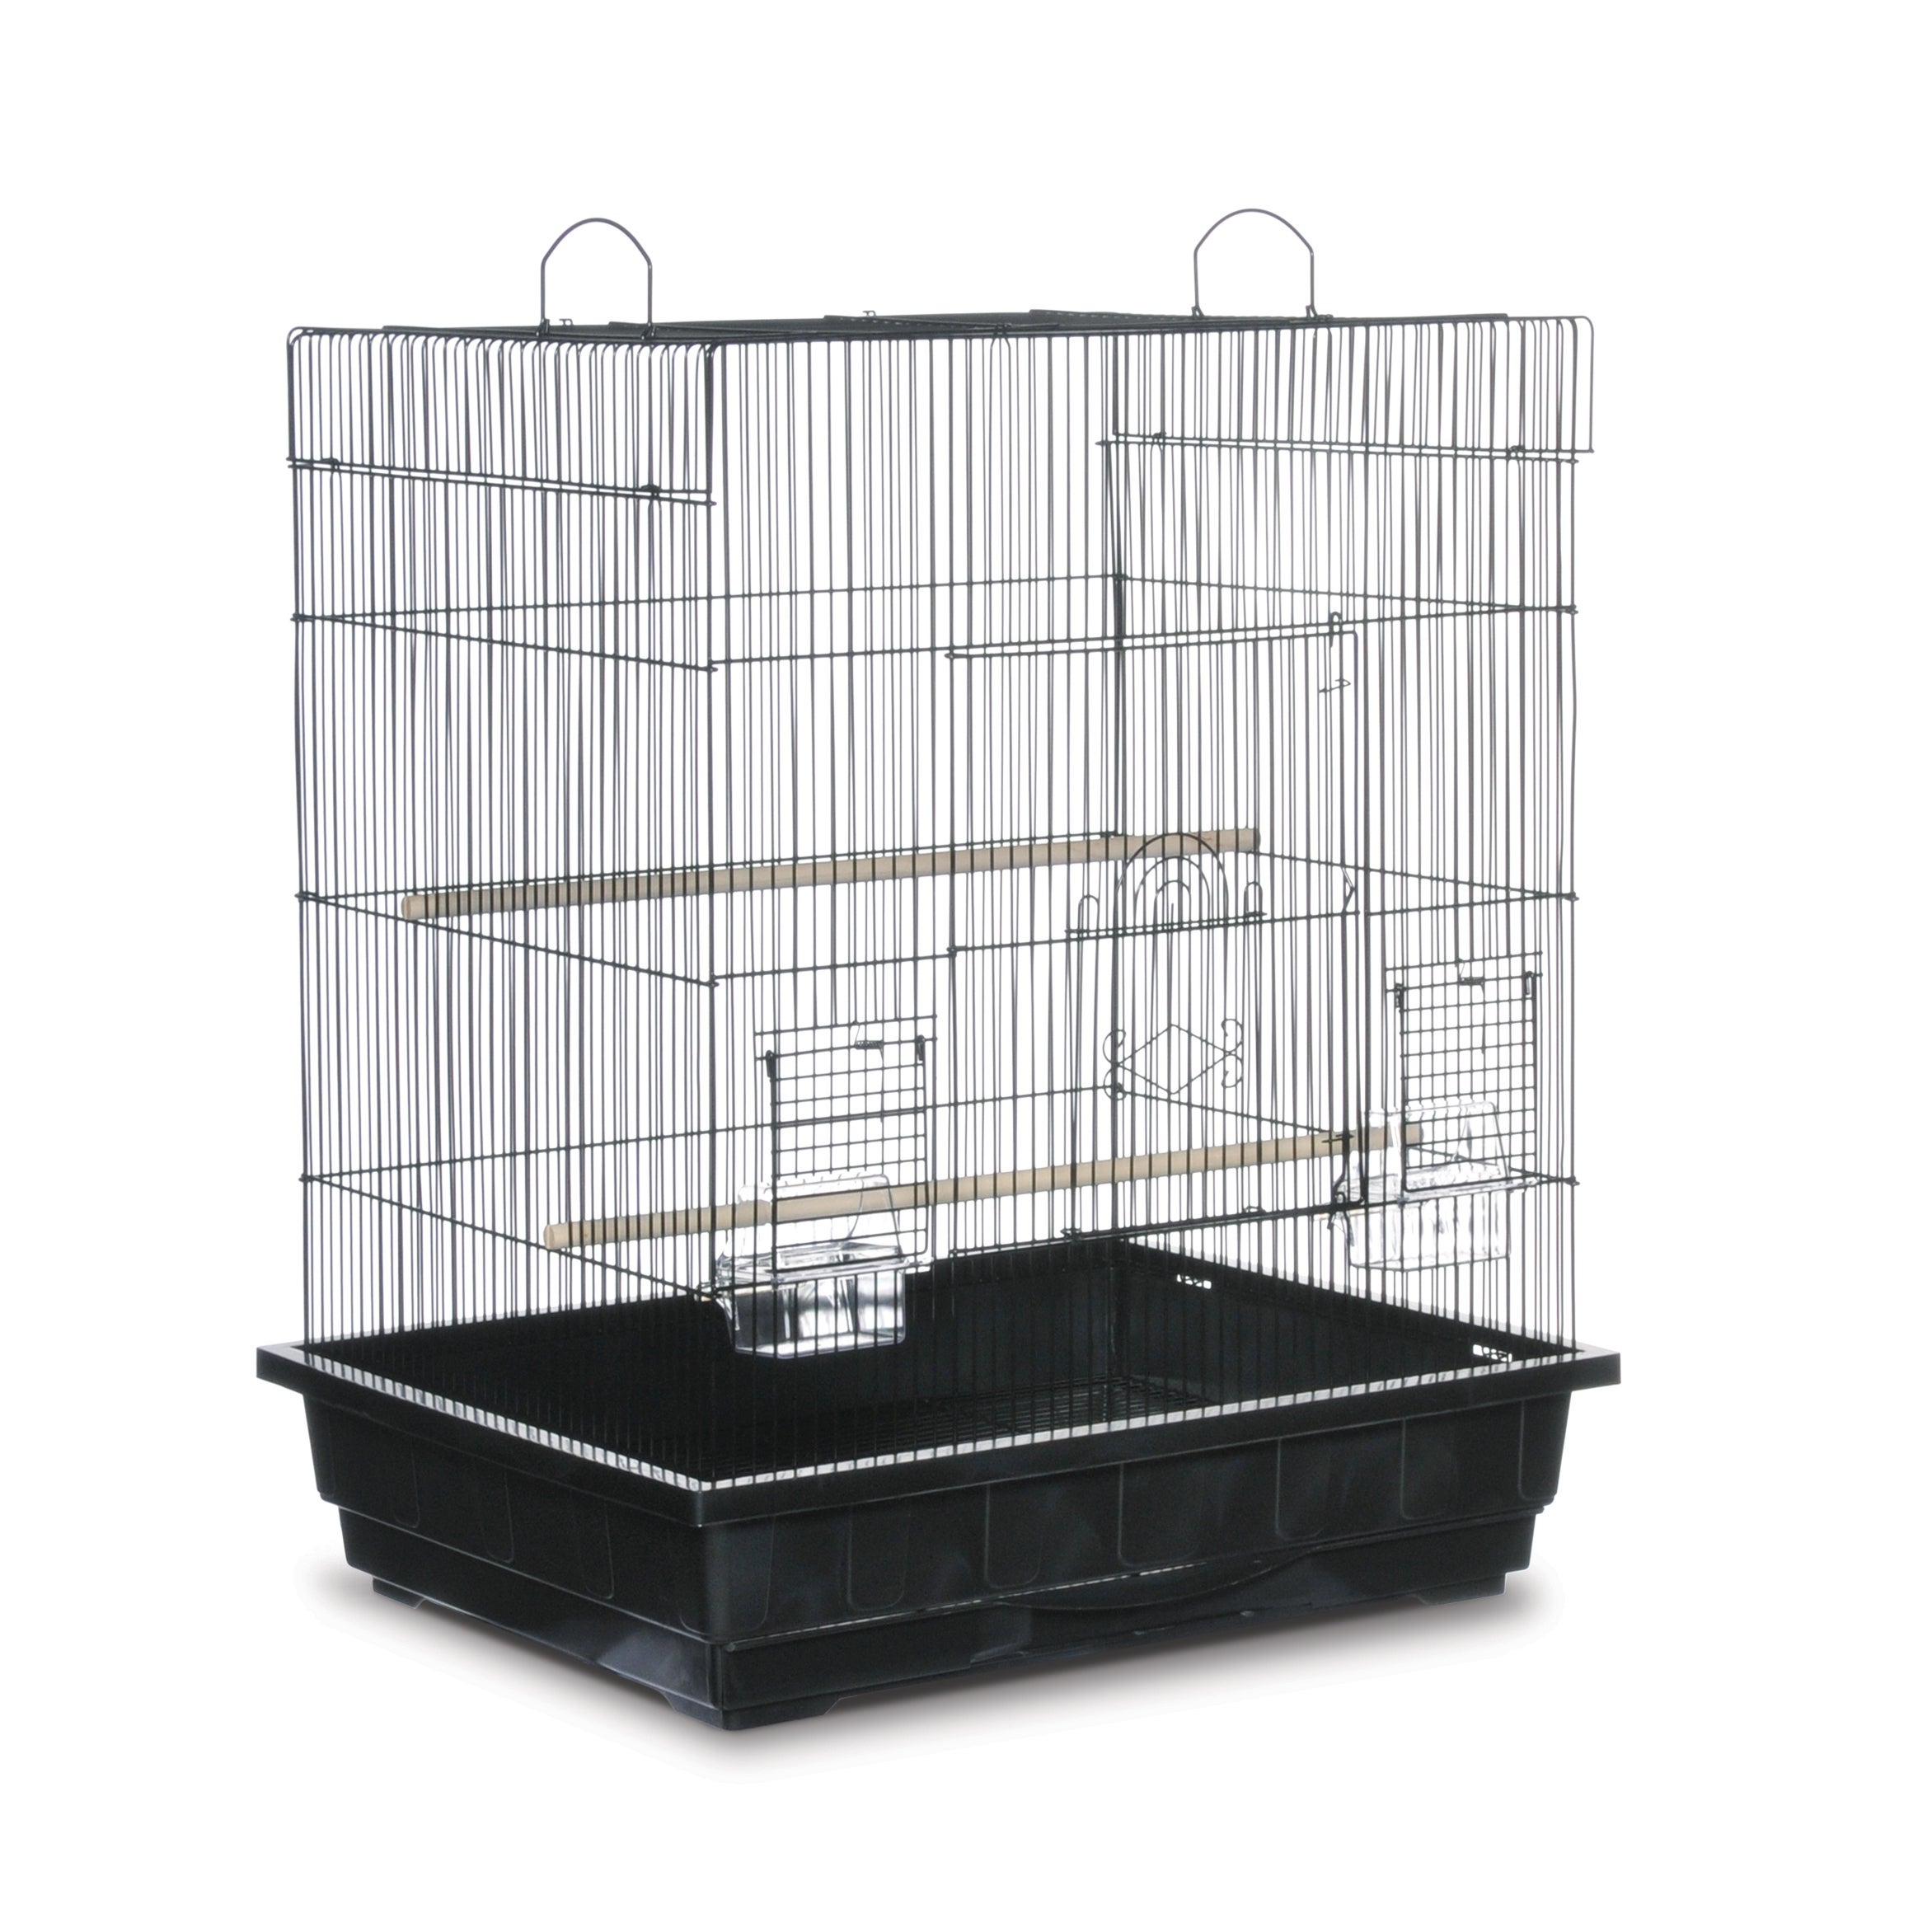 Prevue Pet Products Square Top Parakeet Cage (Black)